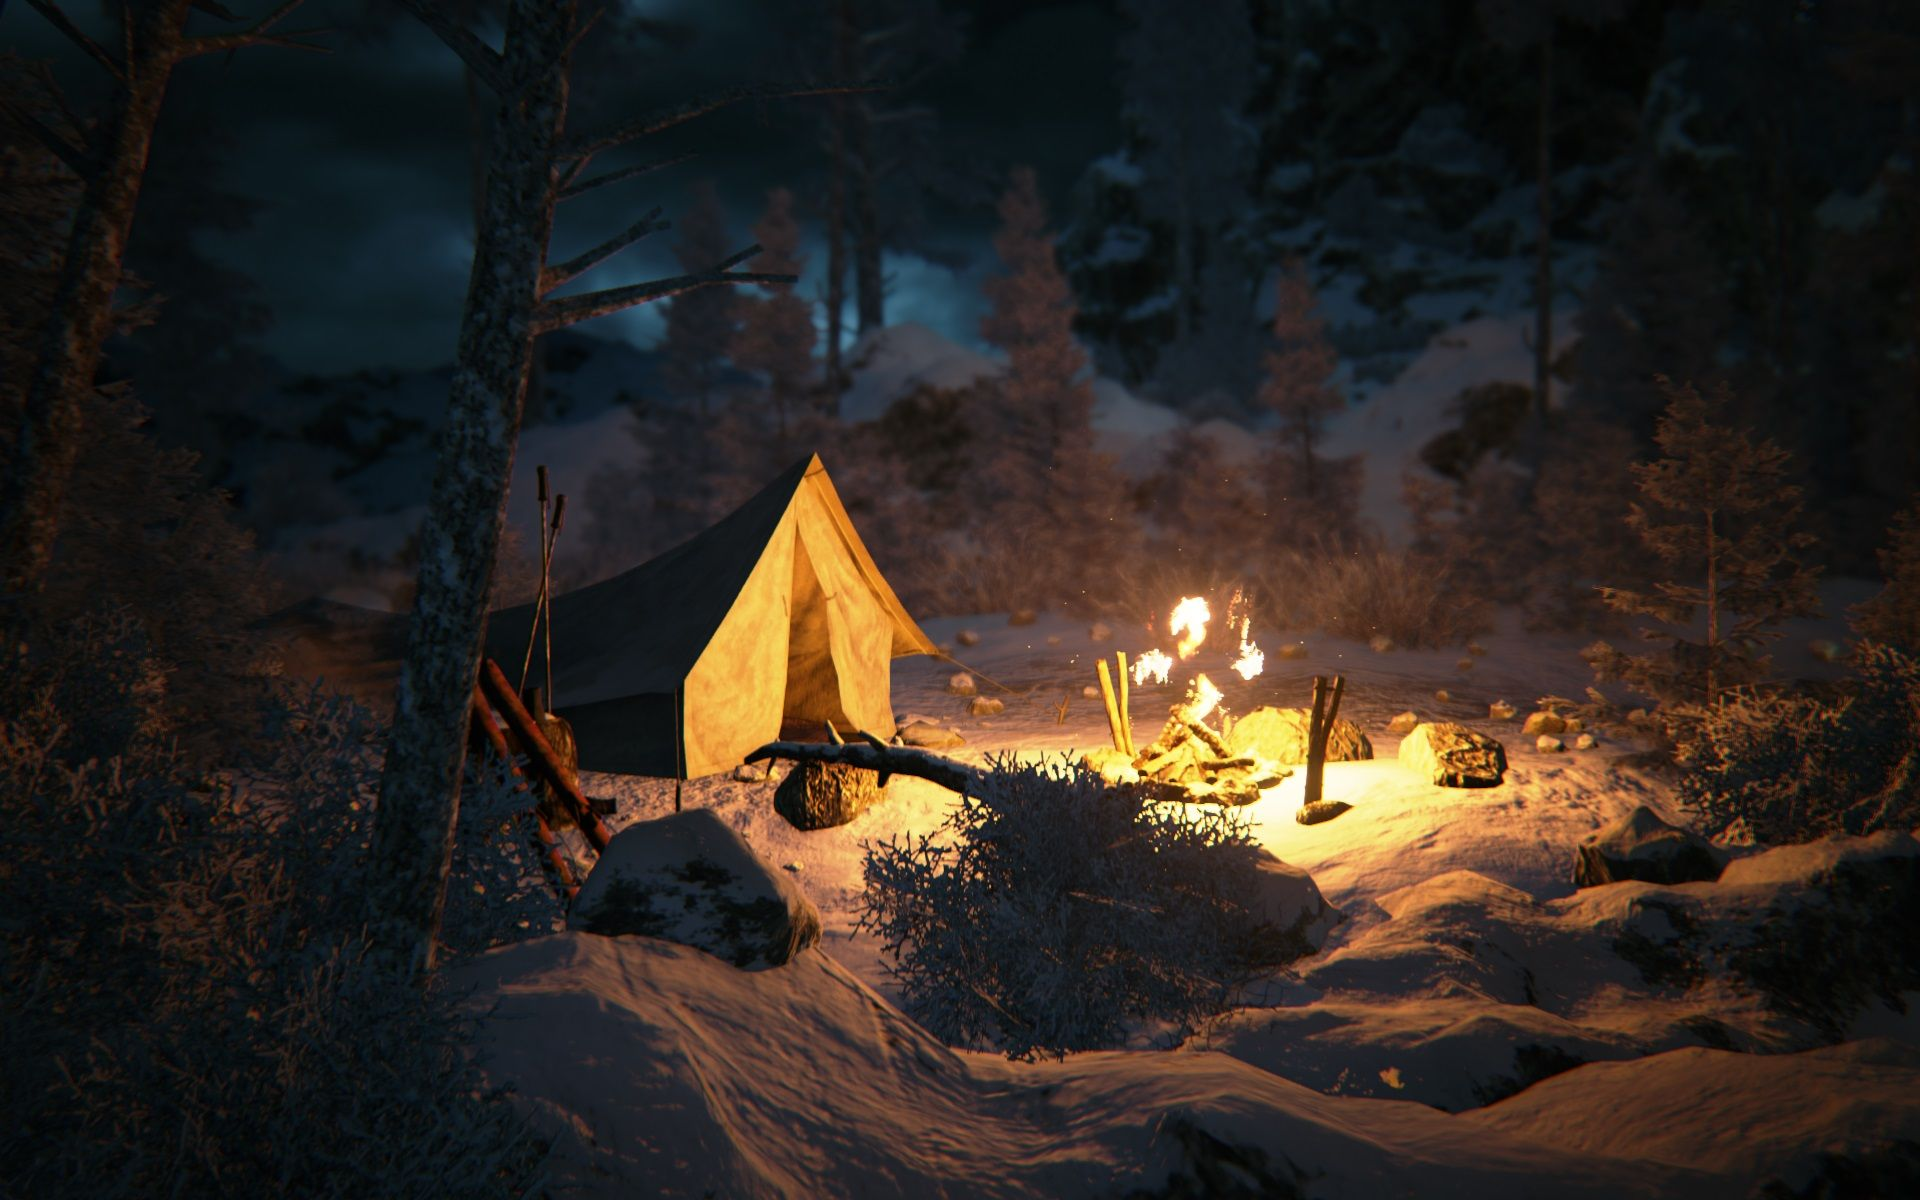 Exploration horror adventure 'Kholat' comes to PS4 on March 8th